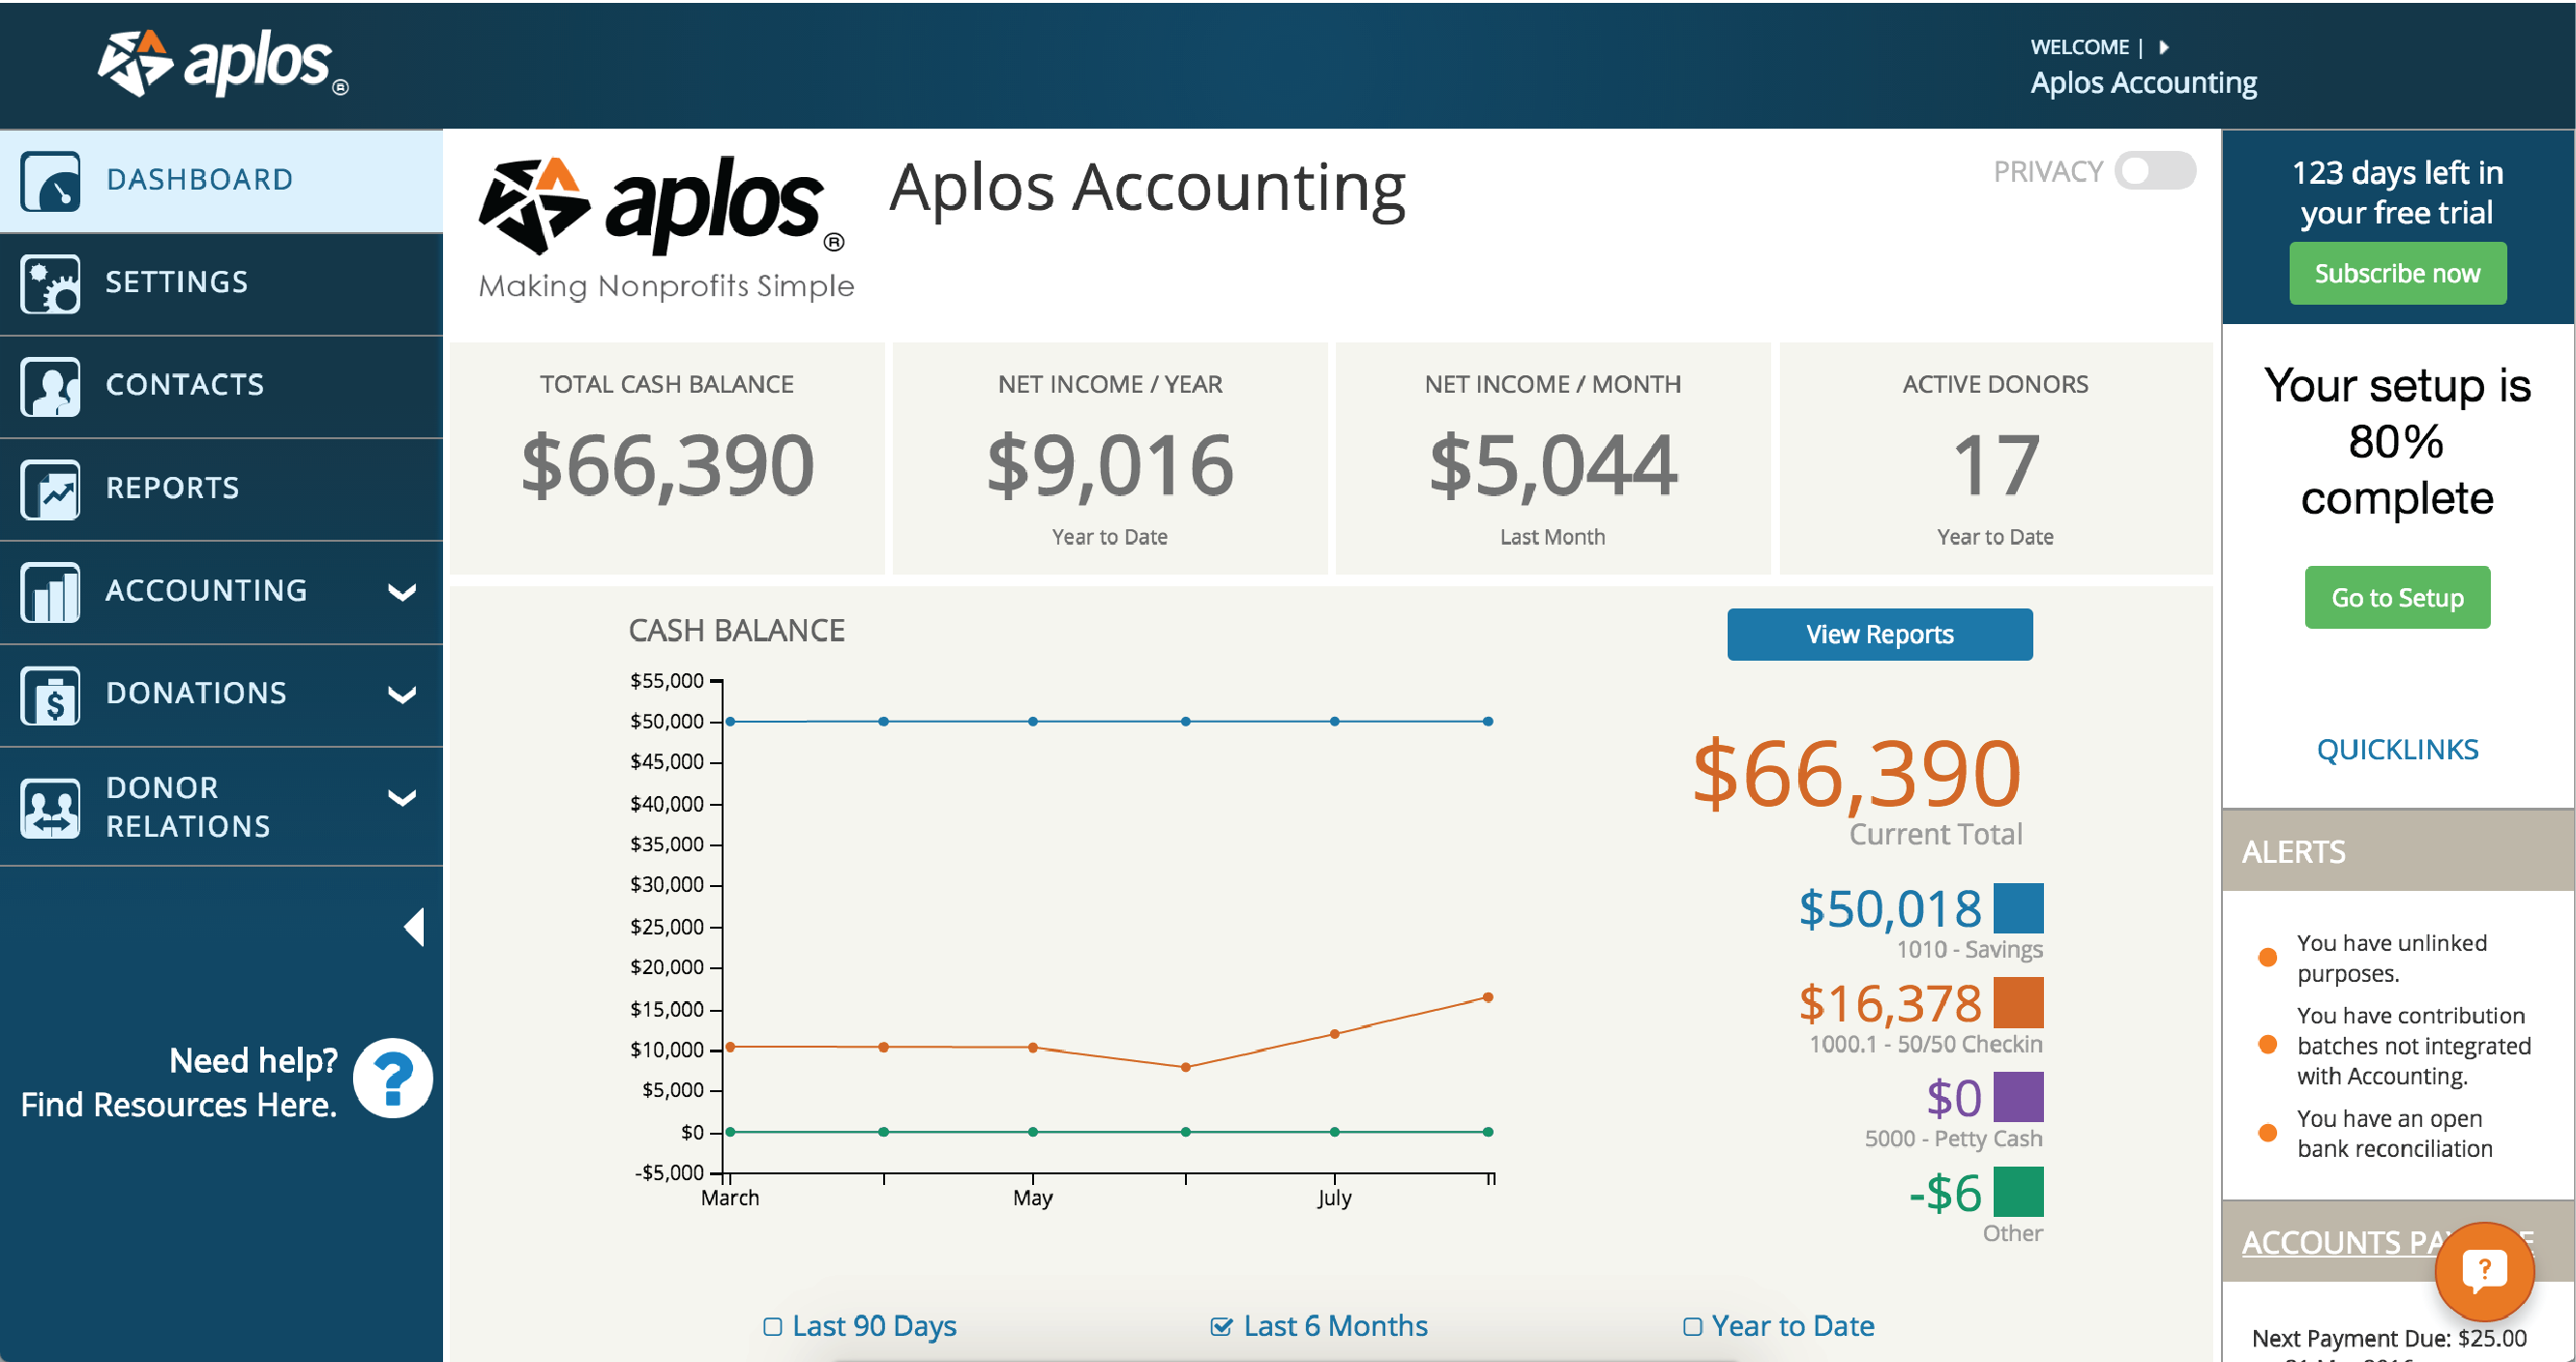 Aplos Demo - The Aplos Dashboard